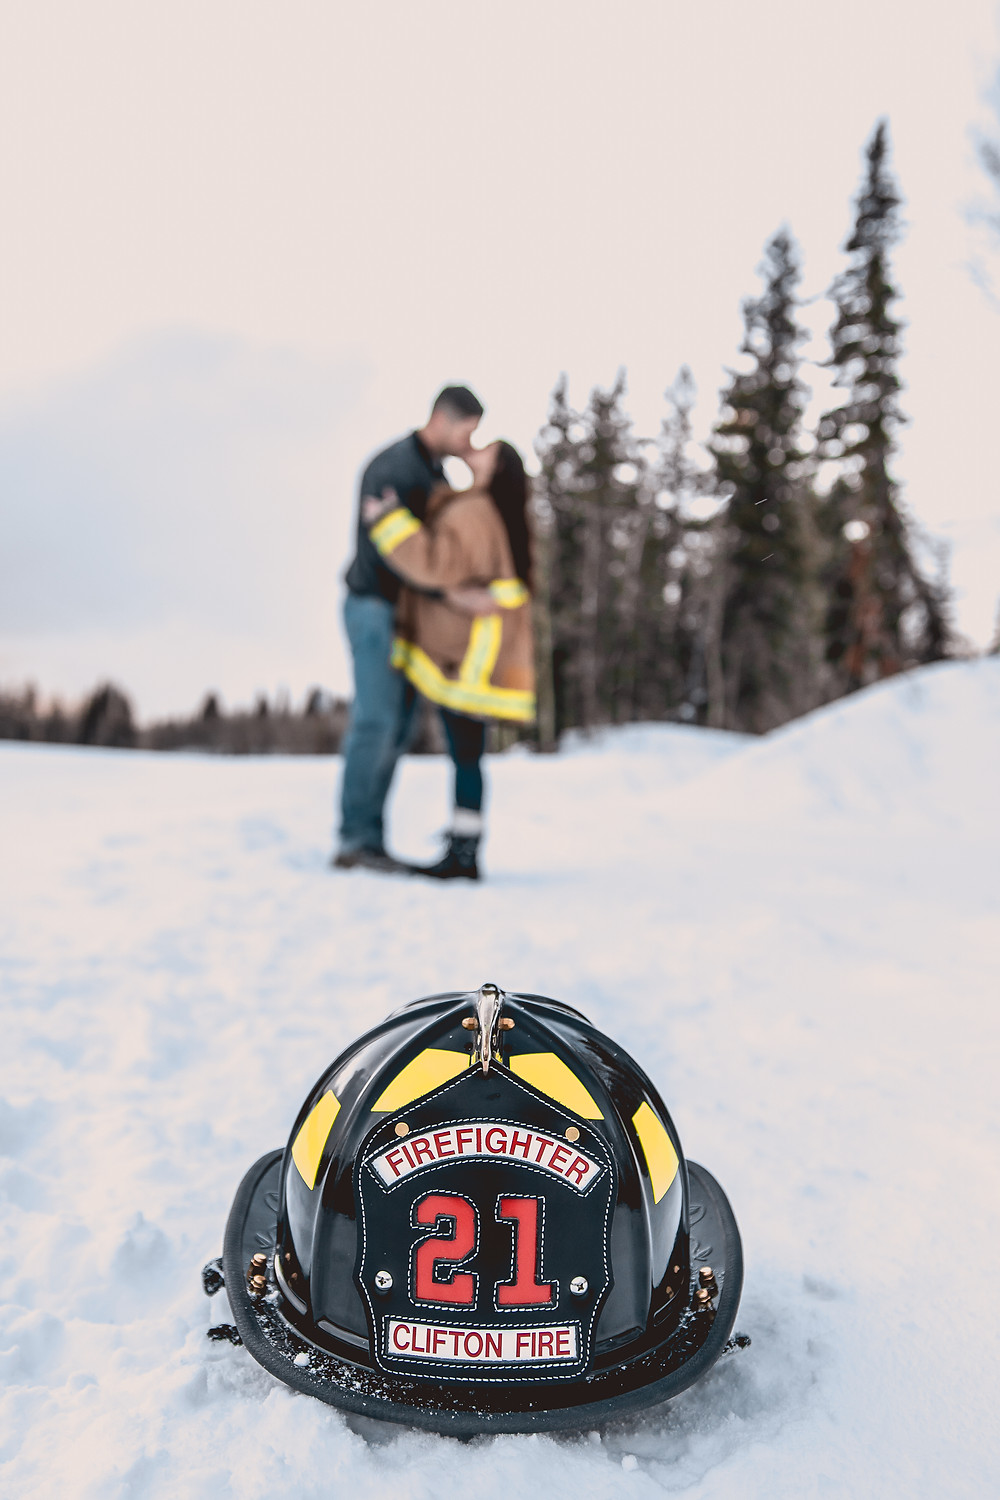 Firefighter engagement photos helmet snowy Colorado mountains Grand Mesa Lakes Lodge winter